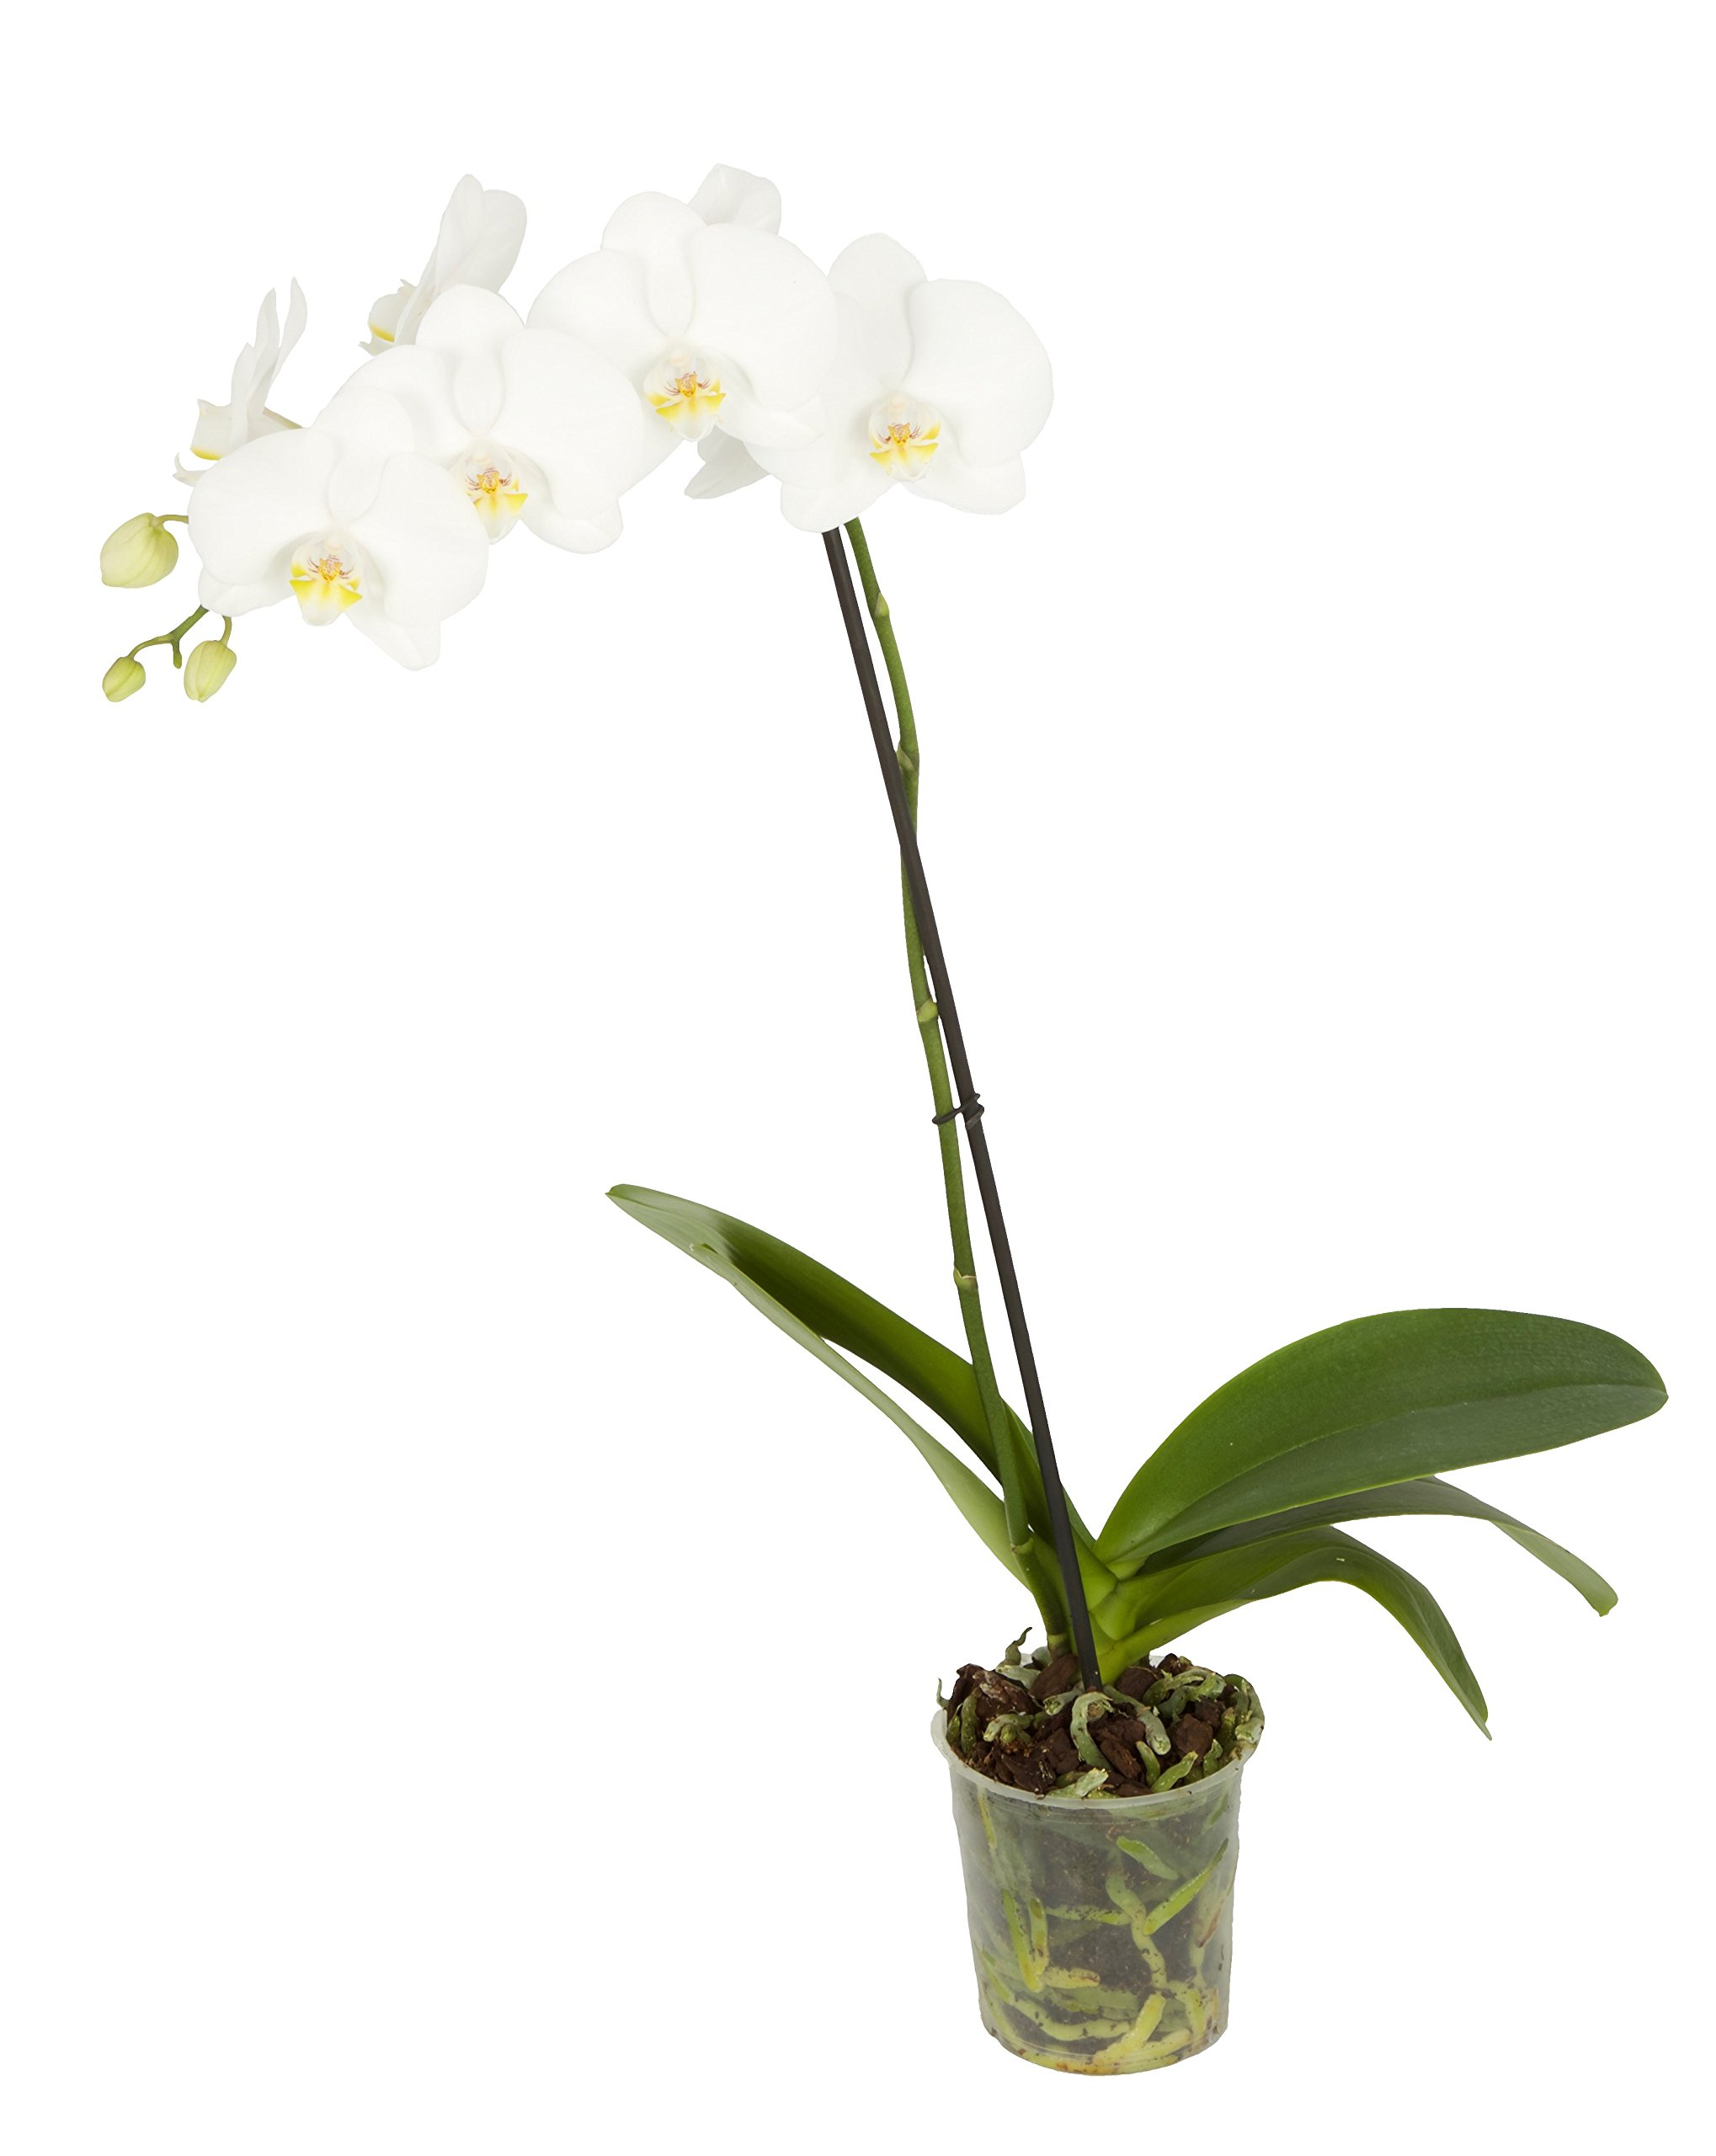 Color Orchids Live Blooming Single Stem Phalaenopsis Orchid Plant in Grow Pot, 20'' x 24'' Tall, White Blooms by Color Orchids